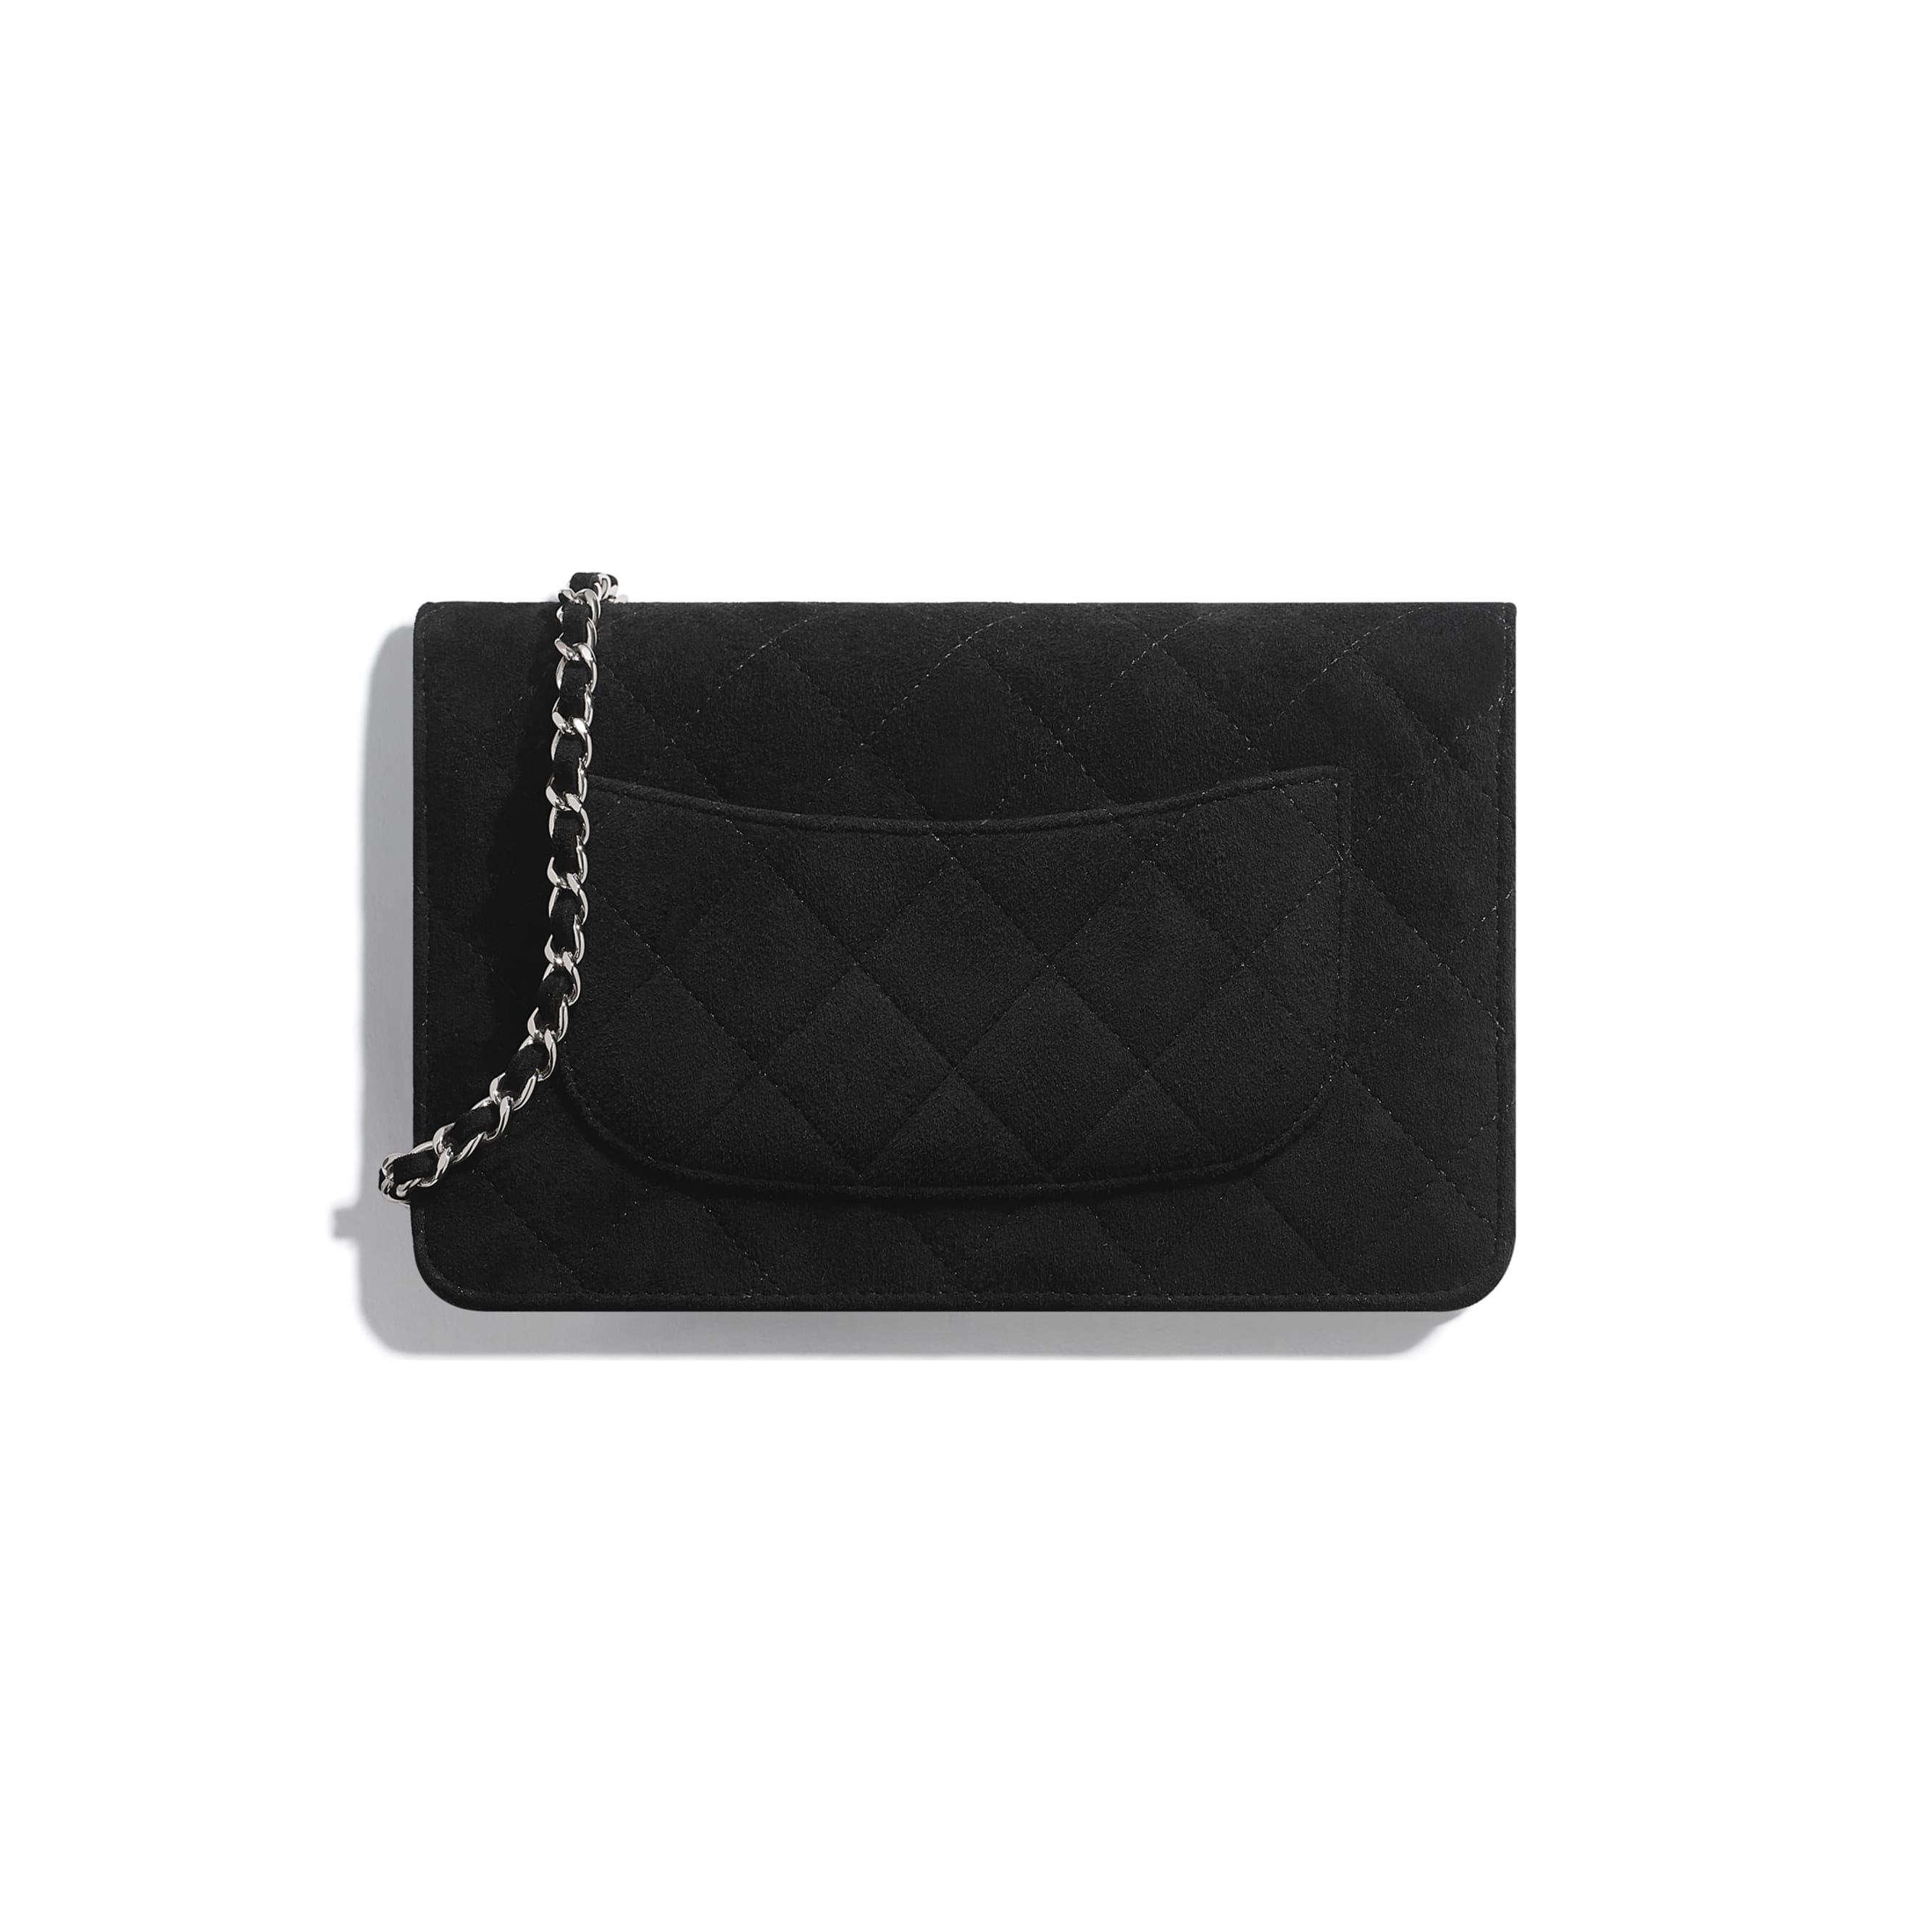 Wallet On Chain - Black - Suede Goatskin, Strass & Silver-Tone Metal - Alternative view - see standard sized version